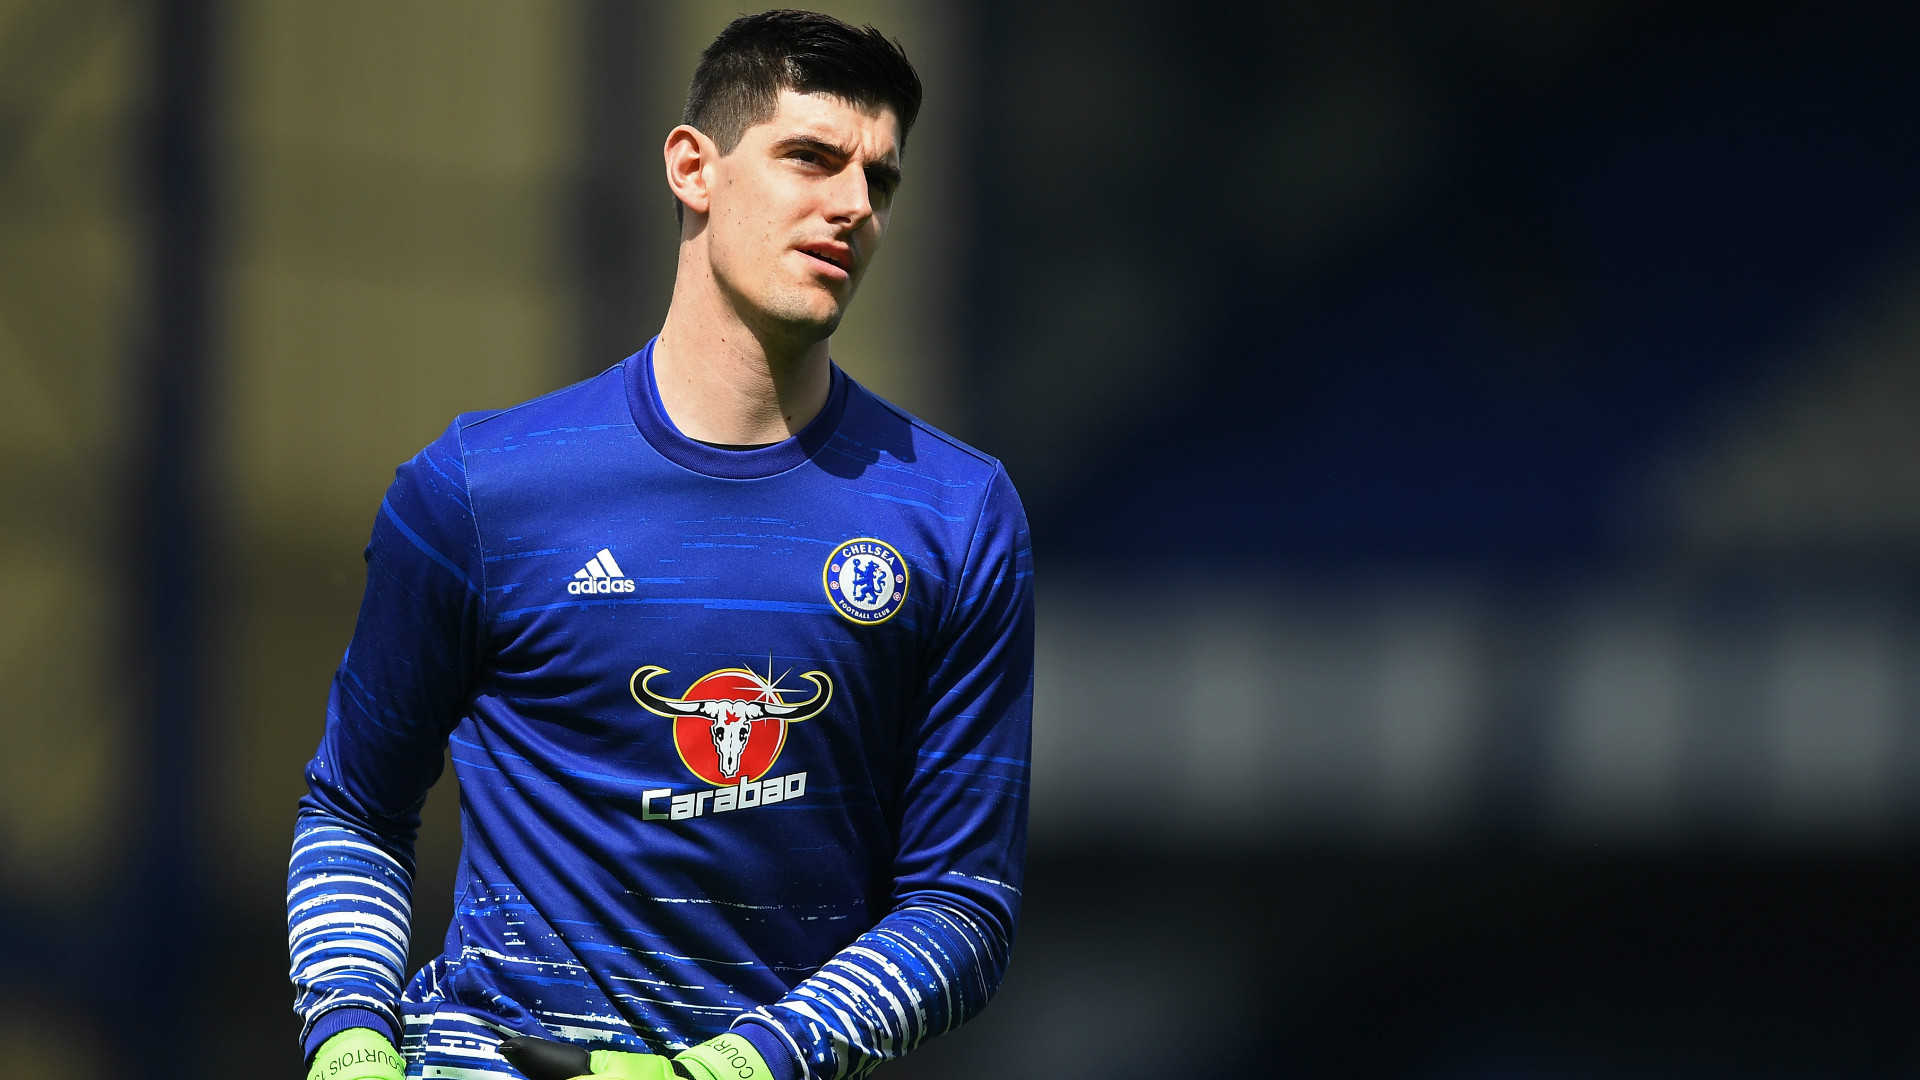 Thibaut courtois wallpaper - Morata hd wallpapers ...